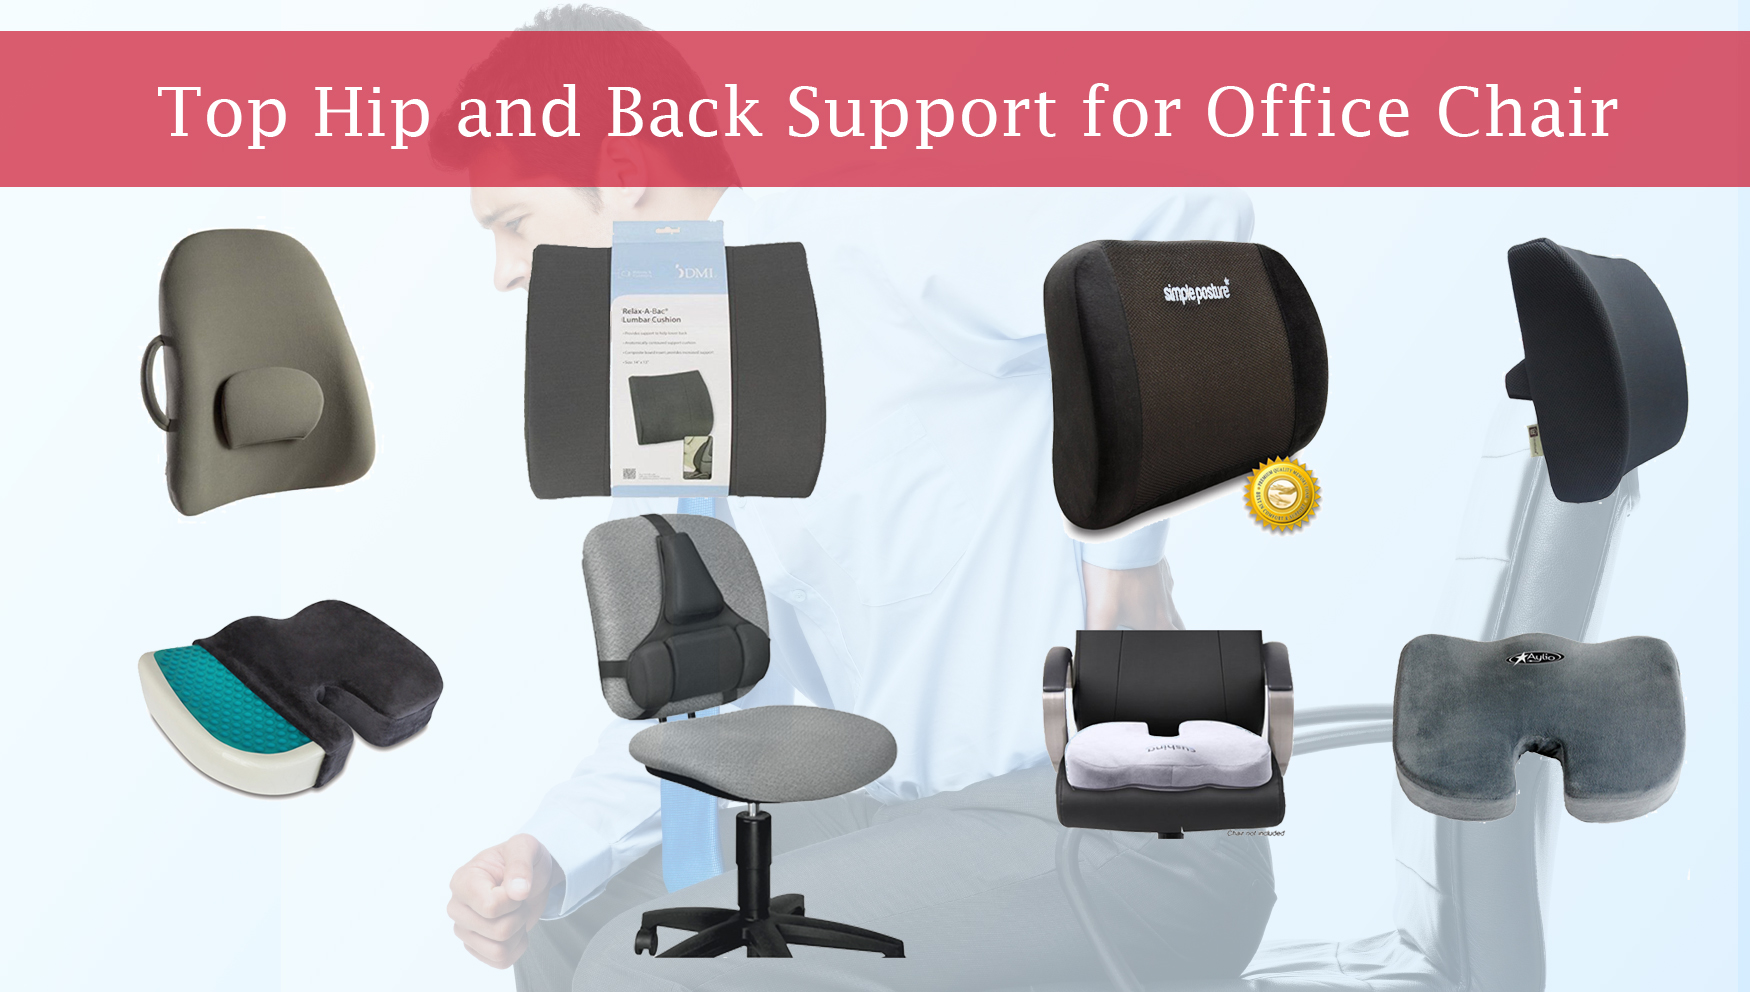 Lower Back Support For Office Chair Top Hip And Back Support For Office Chair